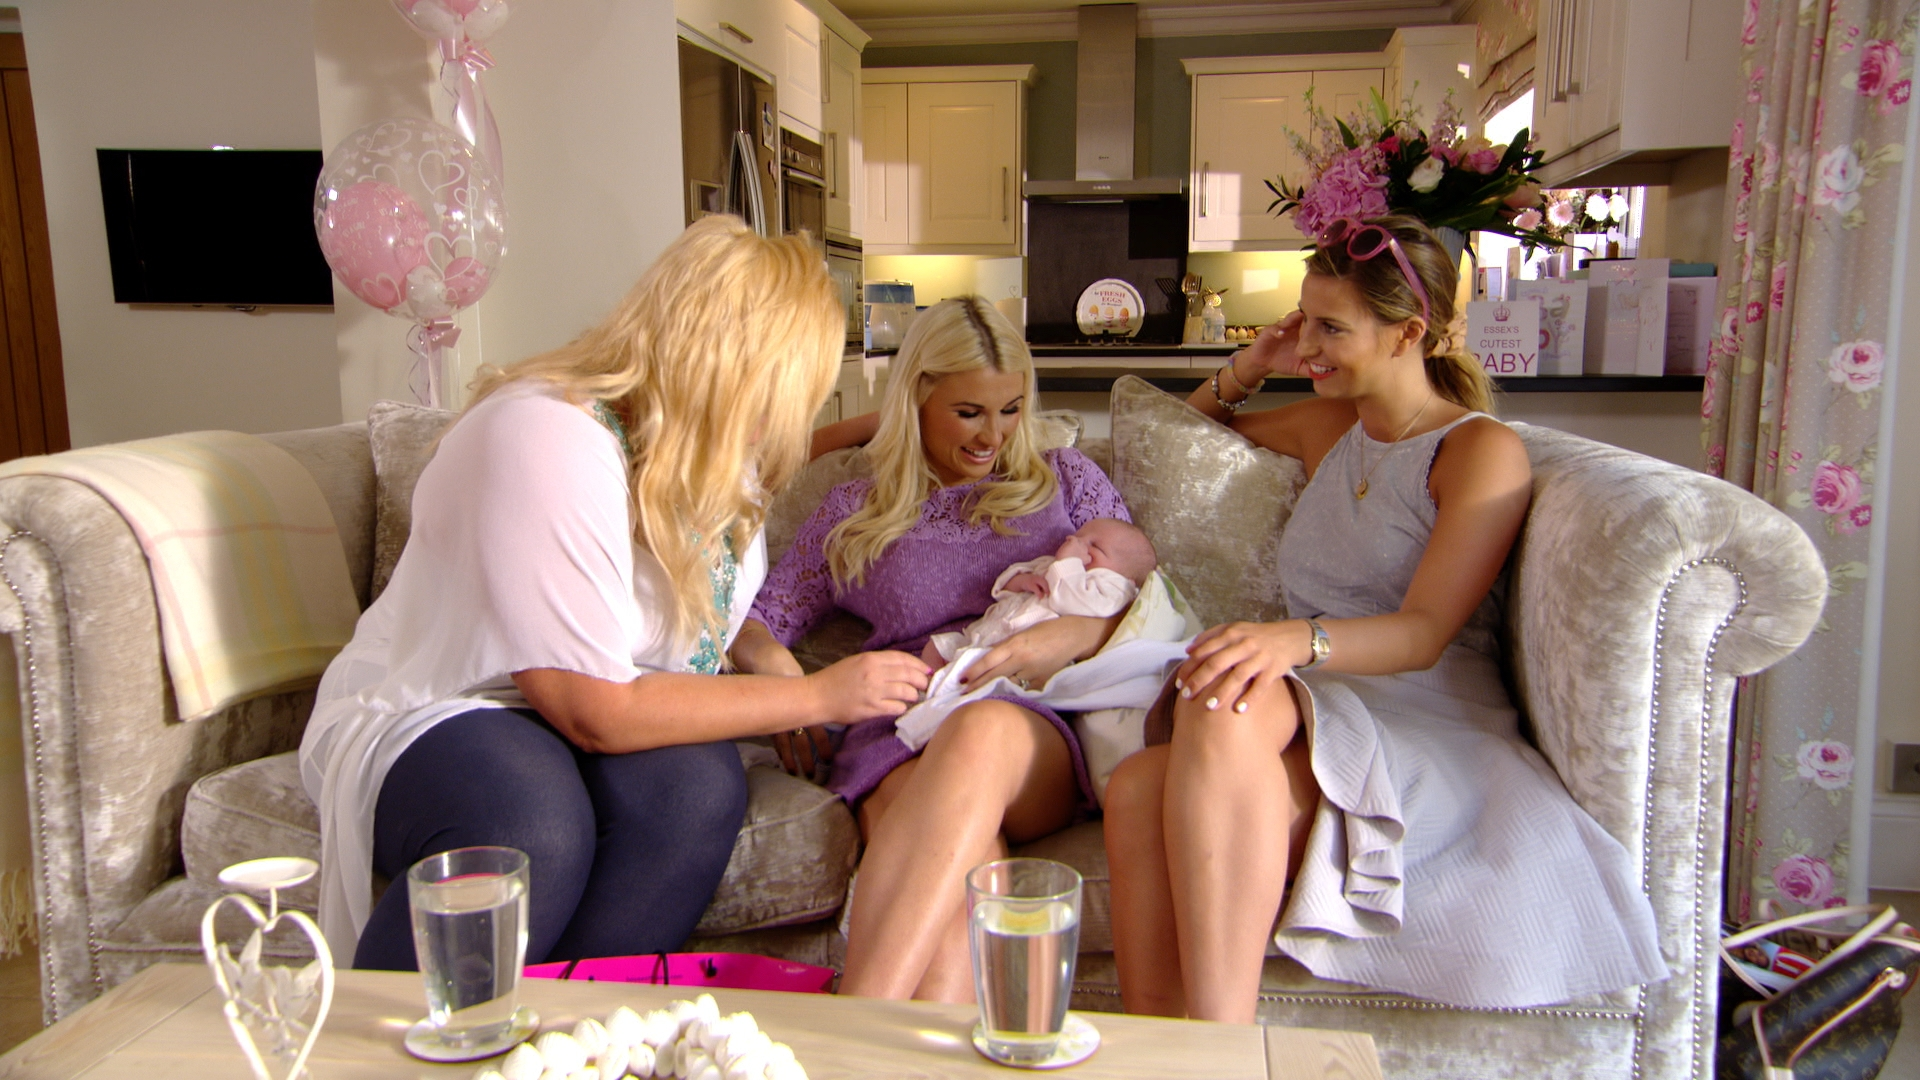 TOWIE mum Billie Faiers says fiancé Greg Shepherd is yet to change Nelly's nappy